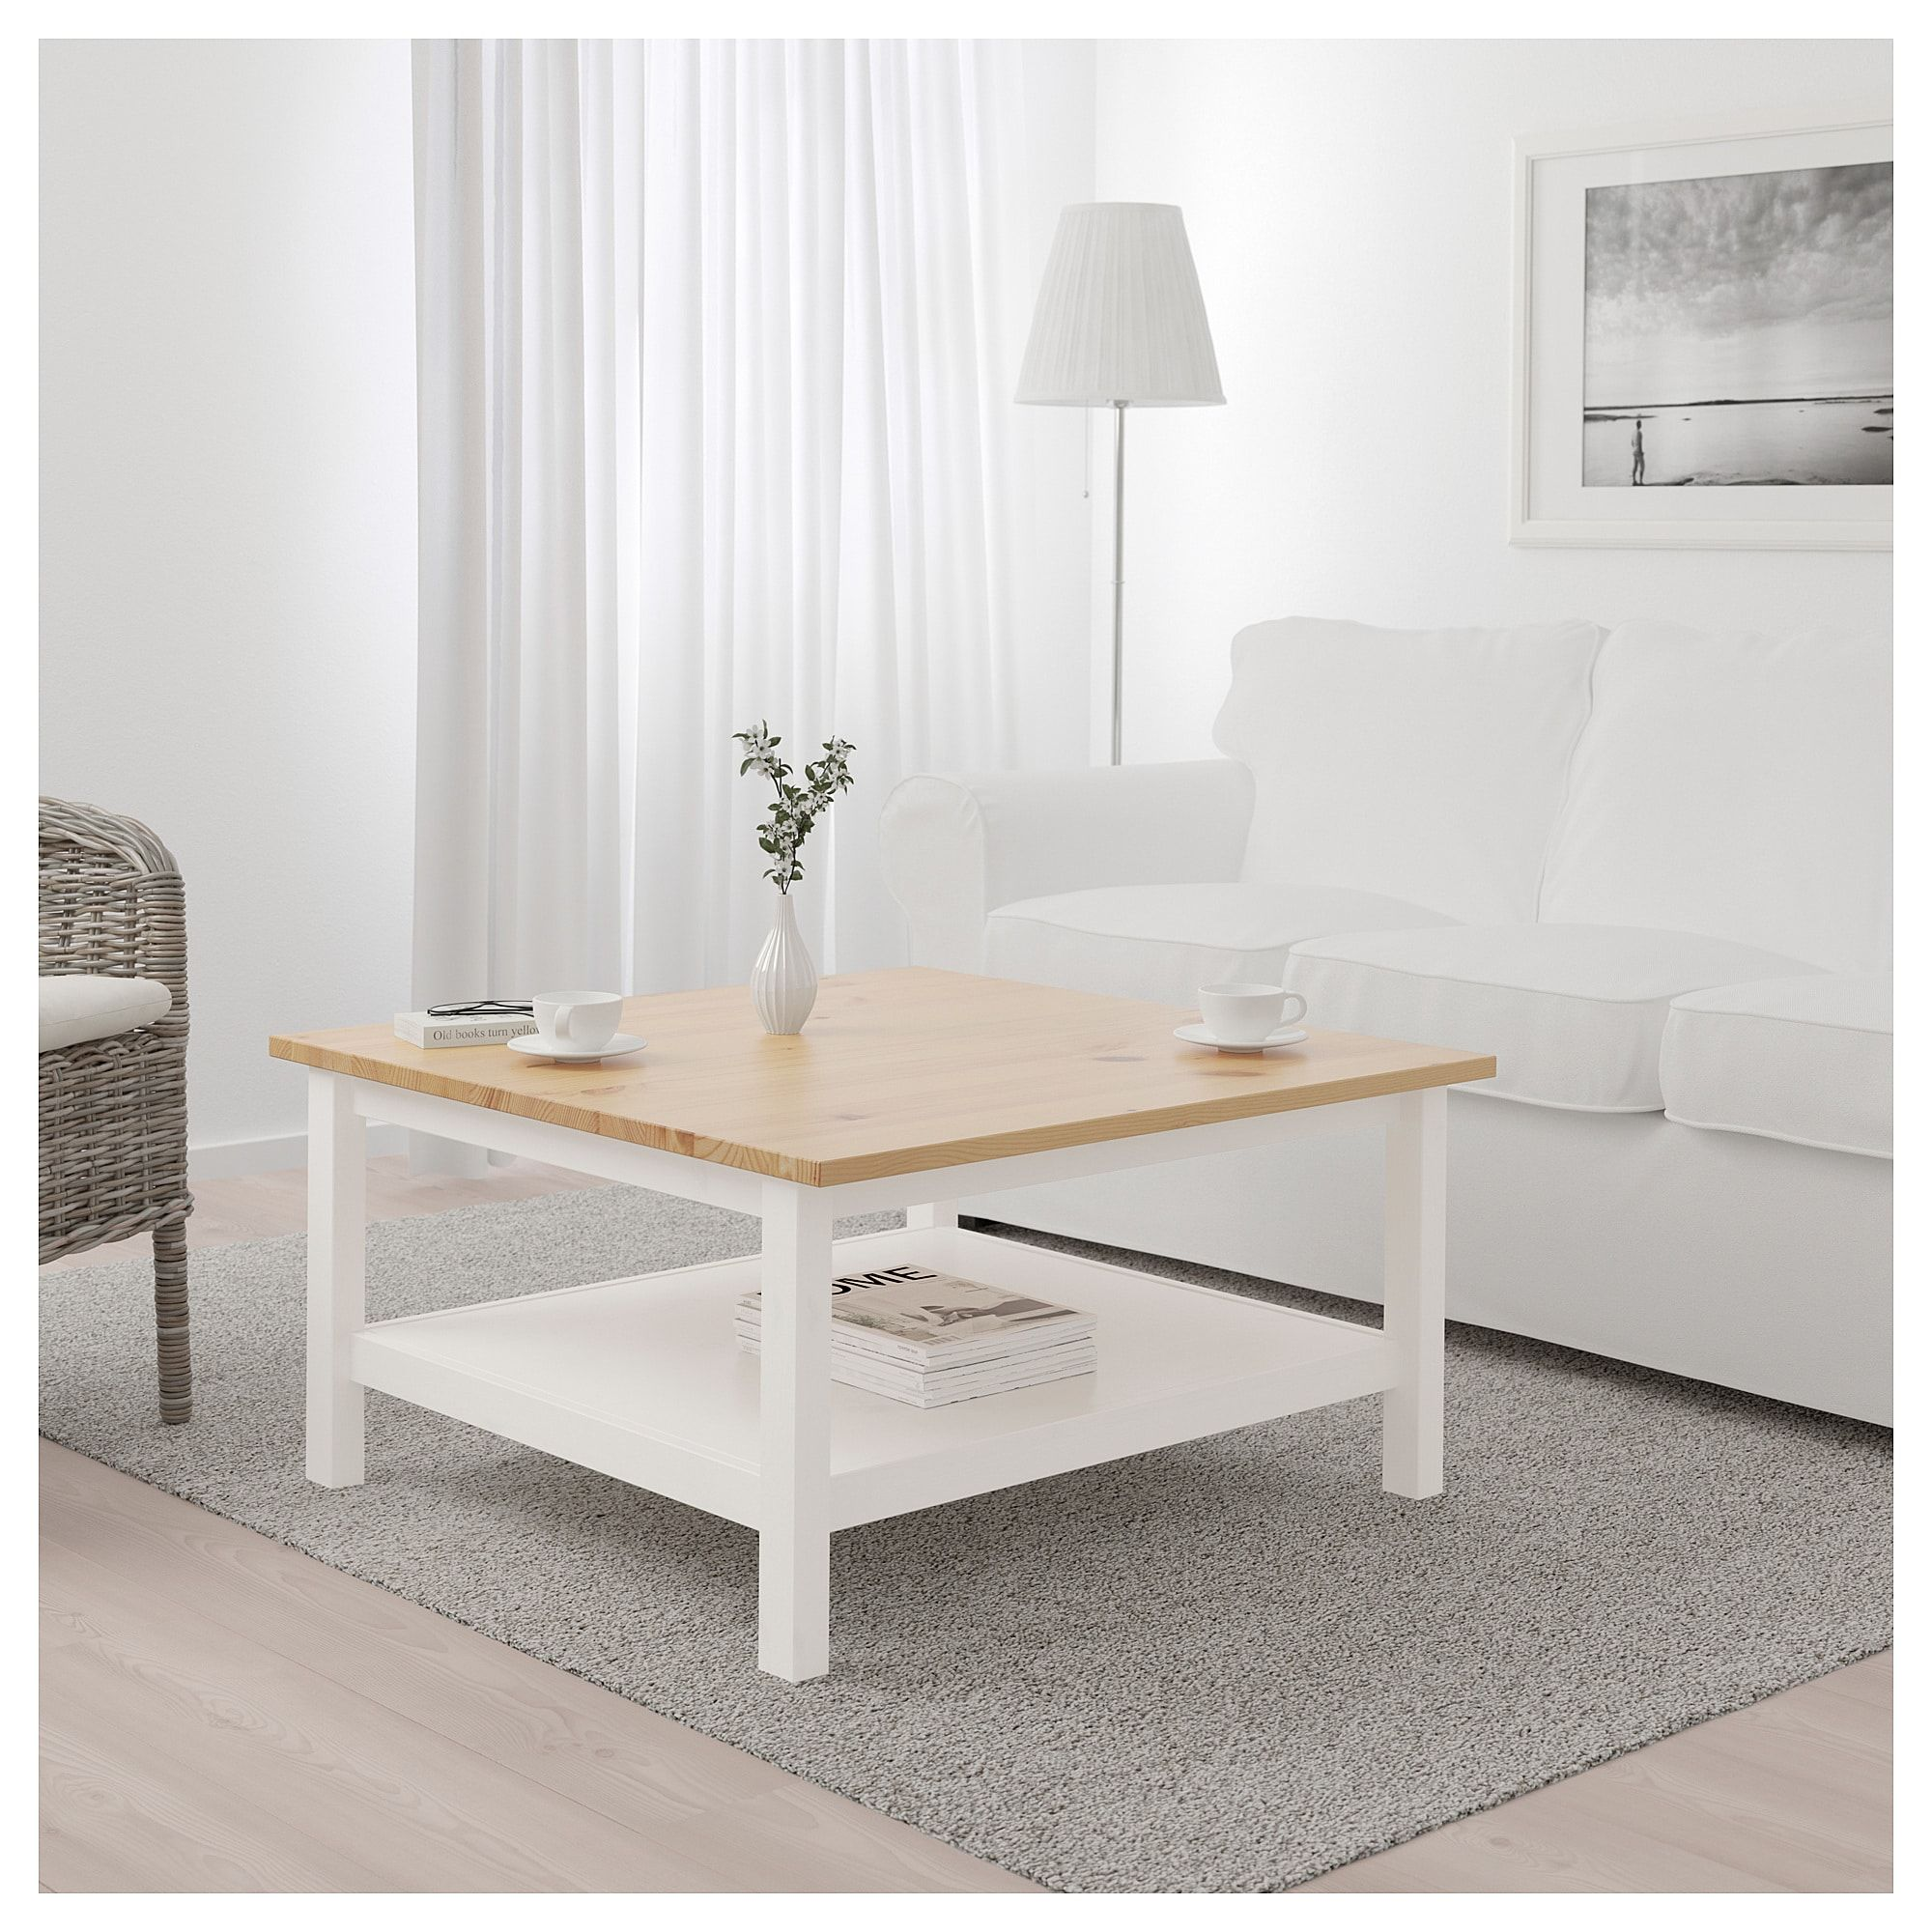 Hemnes Coffee Table White Stain Light Brown 90x90 Cm Ikea Wohnzimmer Braun Wohnzimmermöbel Wohnzimmertisch